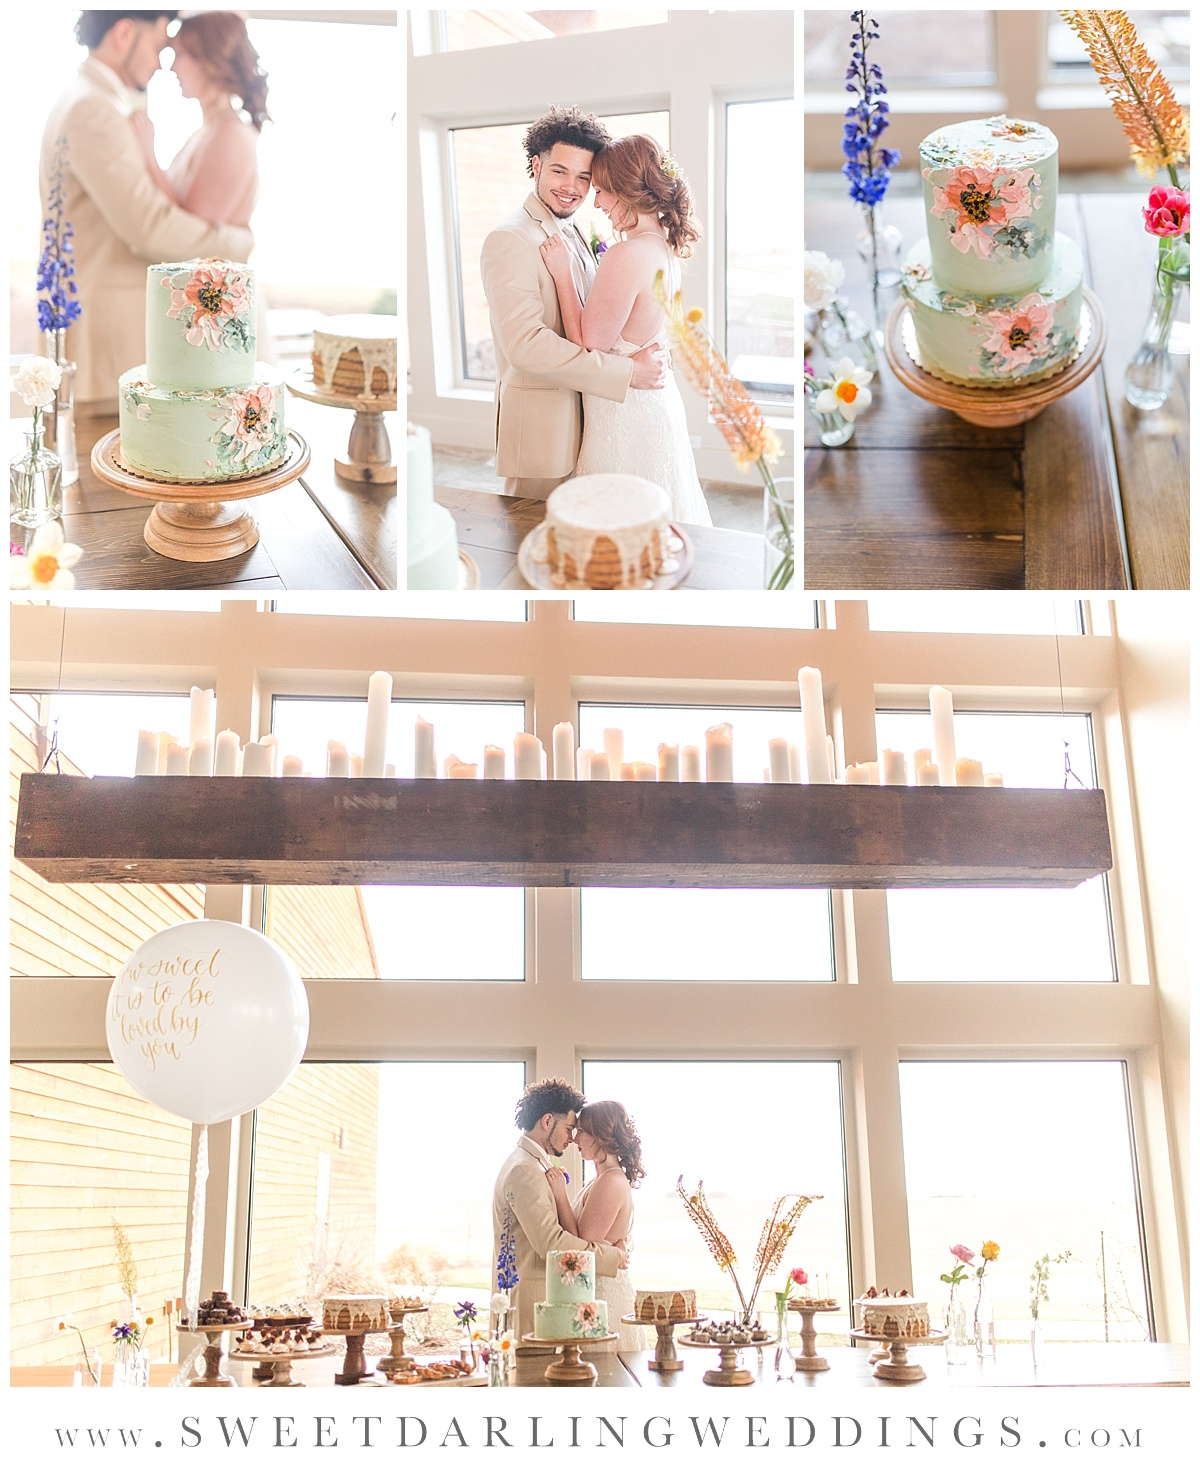 Hand painted cake and desserts at boho wedding at Pear Tree Estate, Champaign, IL